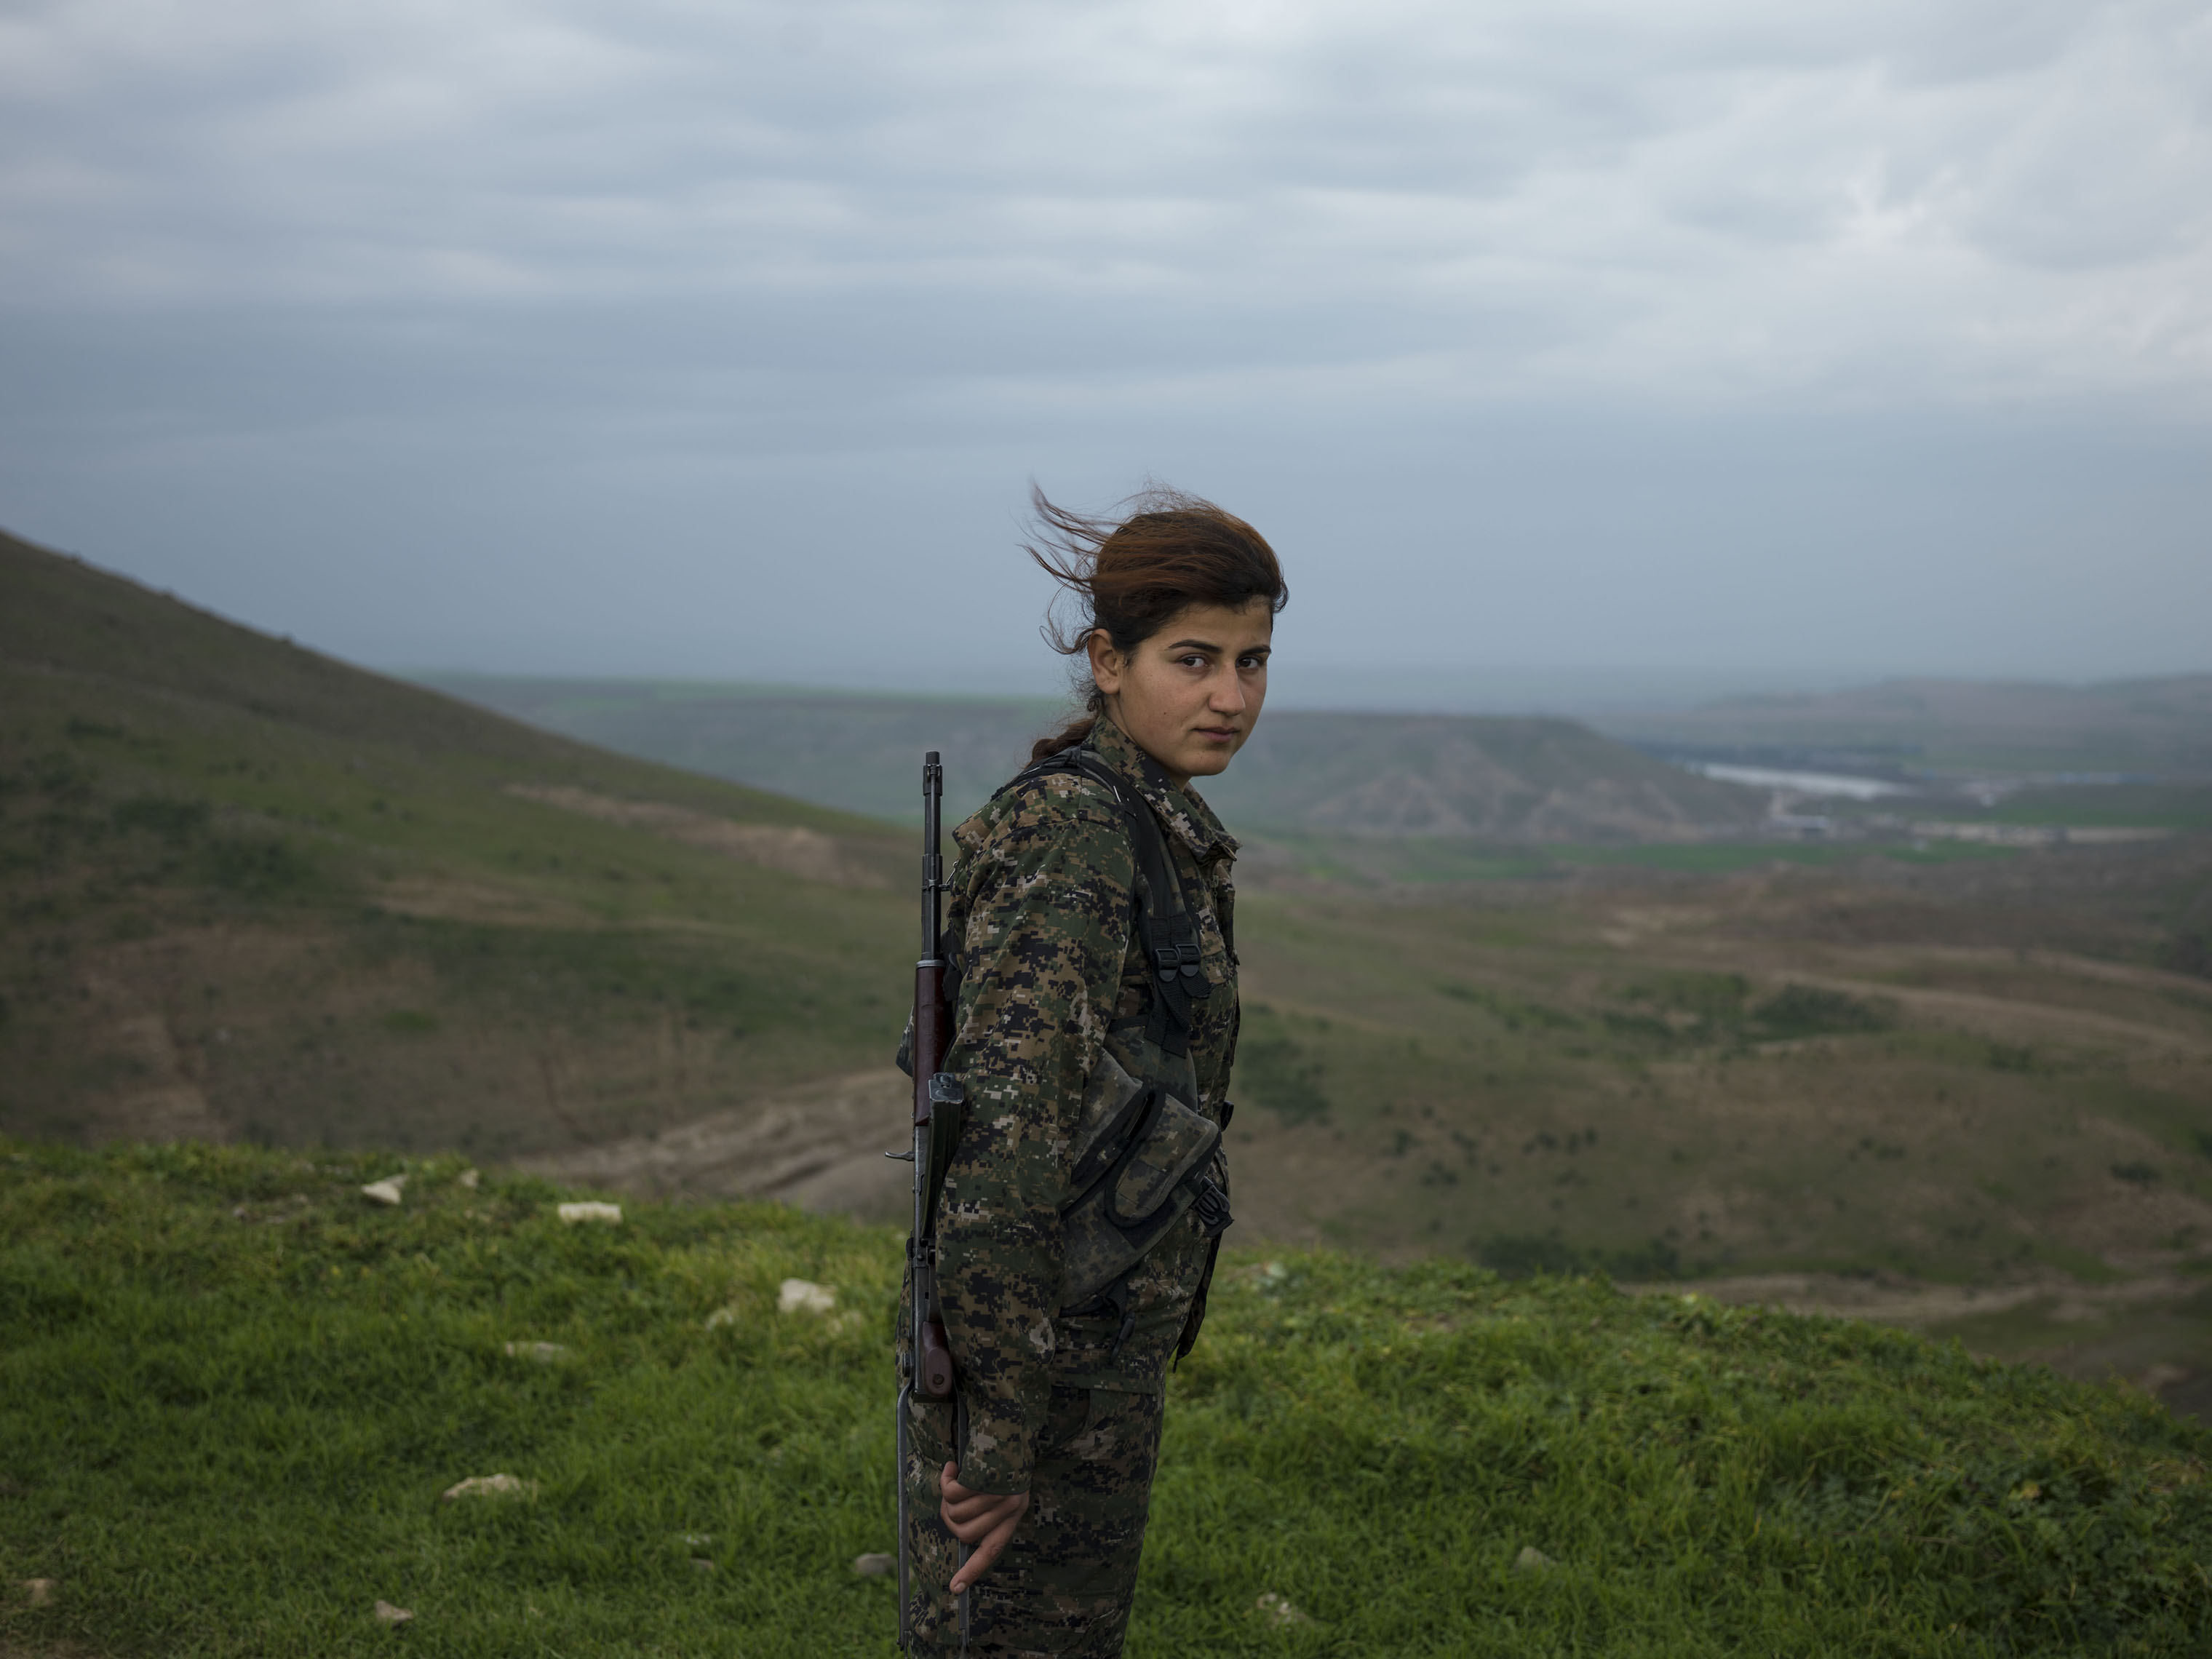 I joined YPJ about seven months ago, because I was looking for something meaningful in my life and my leader [Ocalan] showed me the way and my role in the society. We live in a world where women are dominated by men. We are here to take control of our own future. We are not merely fighting with arms; we fight with our thoughts. Ocalan's ideology is always in our hearts and minds and it is with his thought that we become so empowered that we can even become better soldiers than men. When I am at the frontline, the thought of all the cruelty and injustice against women enrages me so much that I become extra-powerful in combat. I injured an ISIS jihadi in Kobane. When he was wounded, all his friends left him behind and ran away. Later I went there and buried his body. I now feel that I am very powerful and can defend my home, my friends, my country, and myself. Many of us have been martyred and I see no path other than the continuation of their path.  Torin Khairegi, 18, in Zinar base, Rojava, Syria.